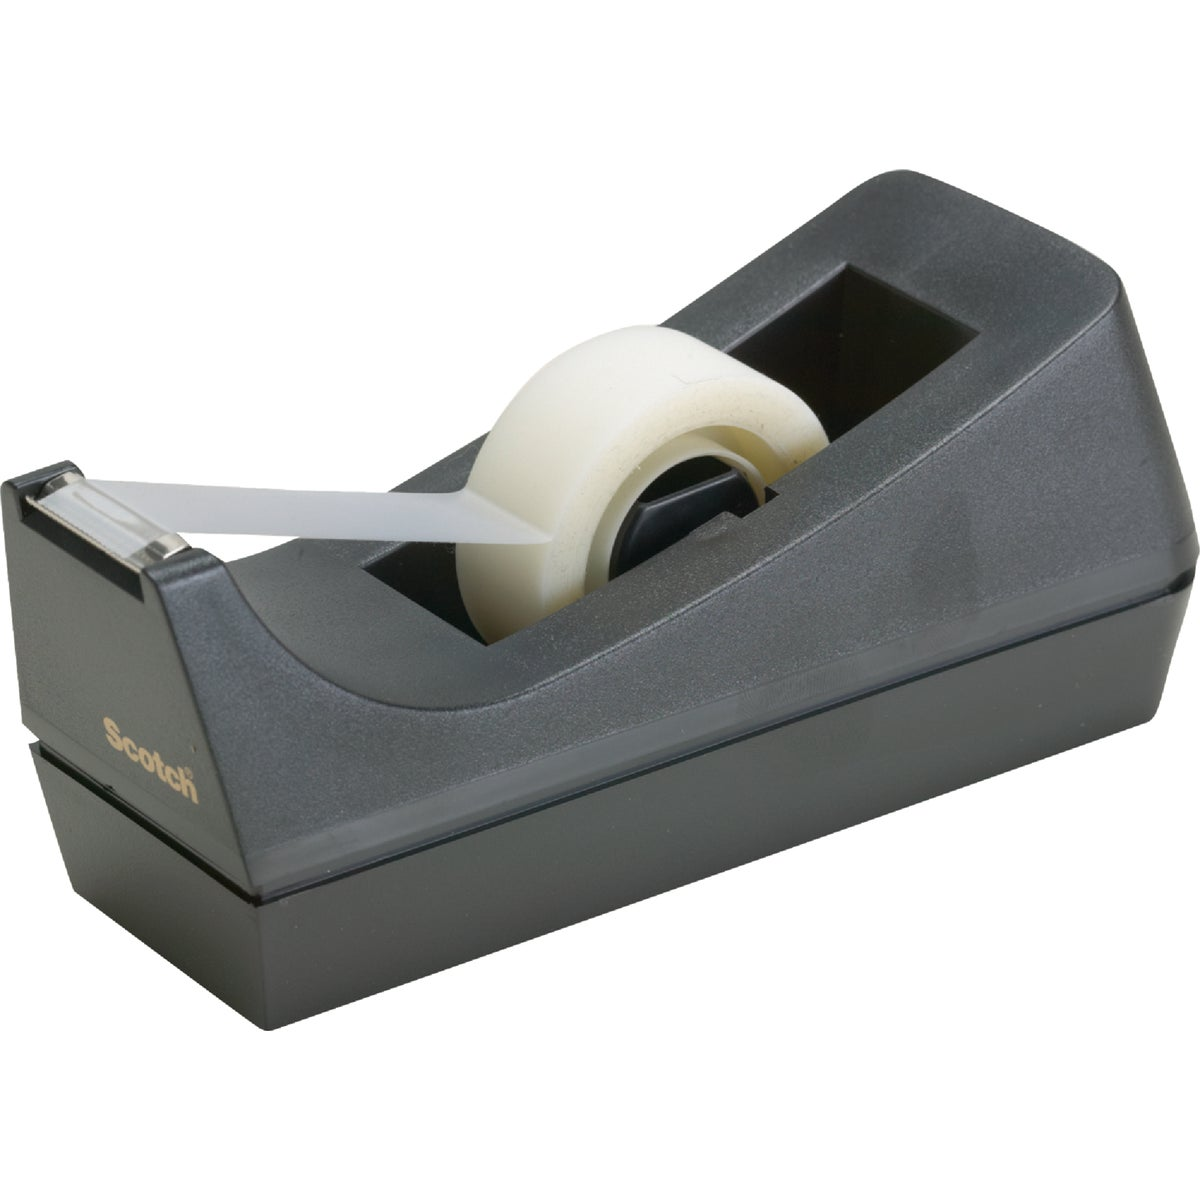 BLK DESK TAPE DISPENSER